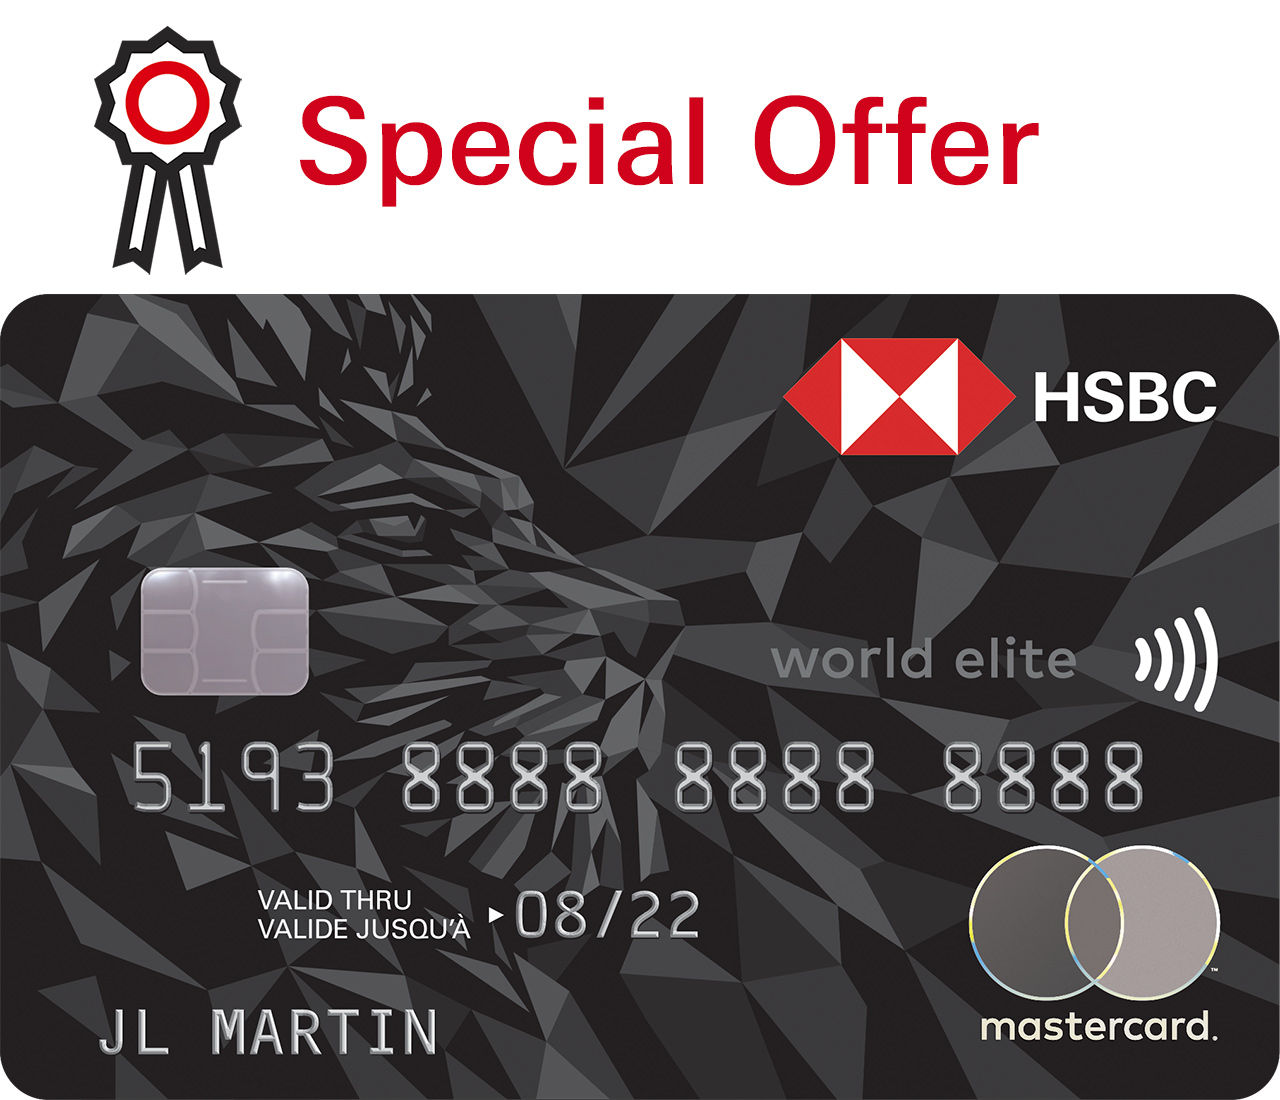 View full details to find out more about HSBC World Elite Mastercard